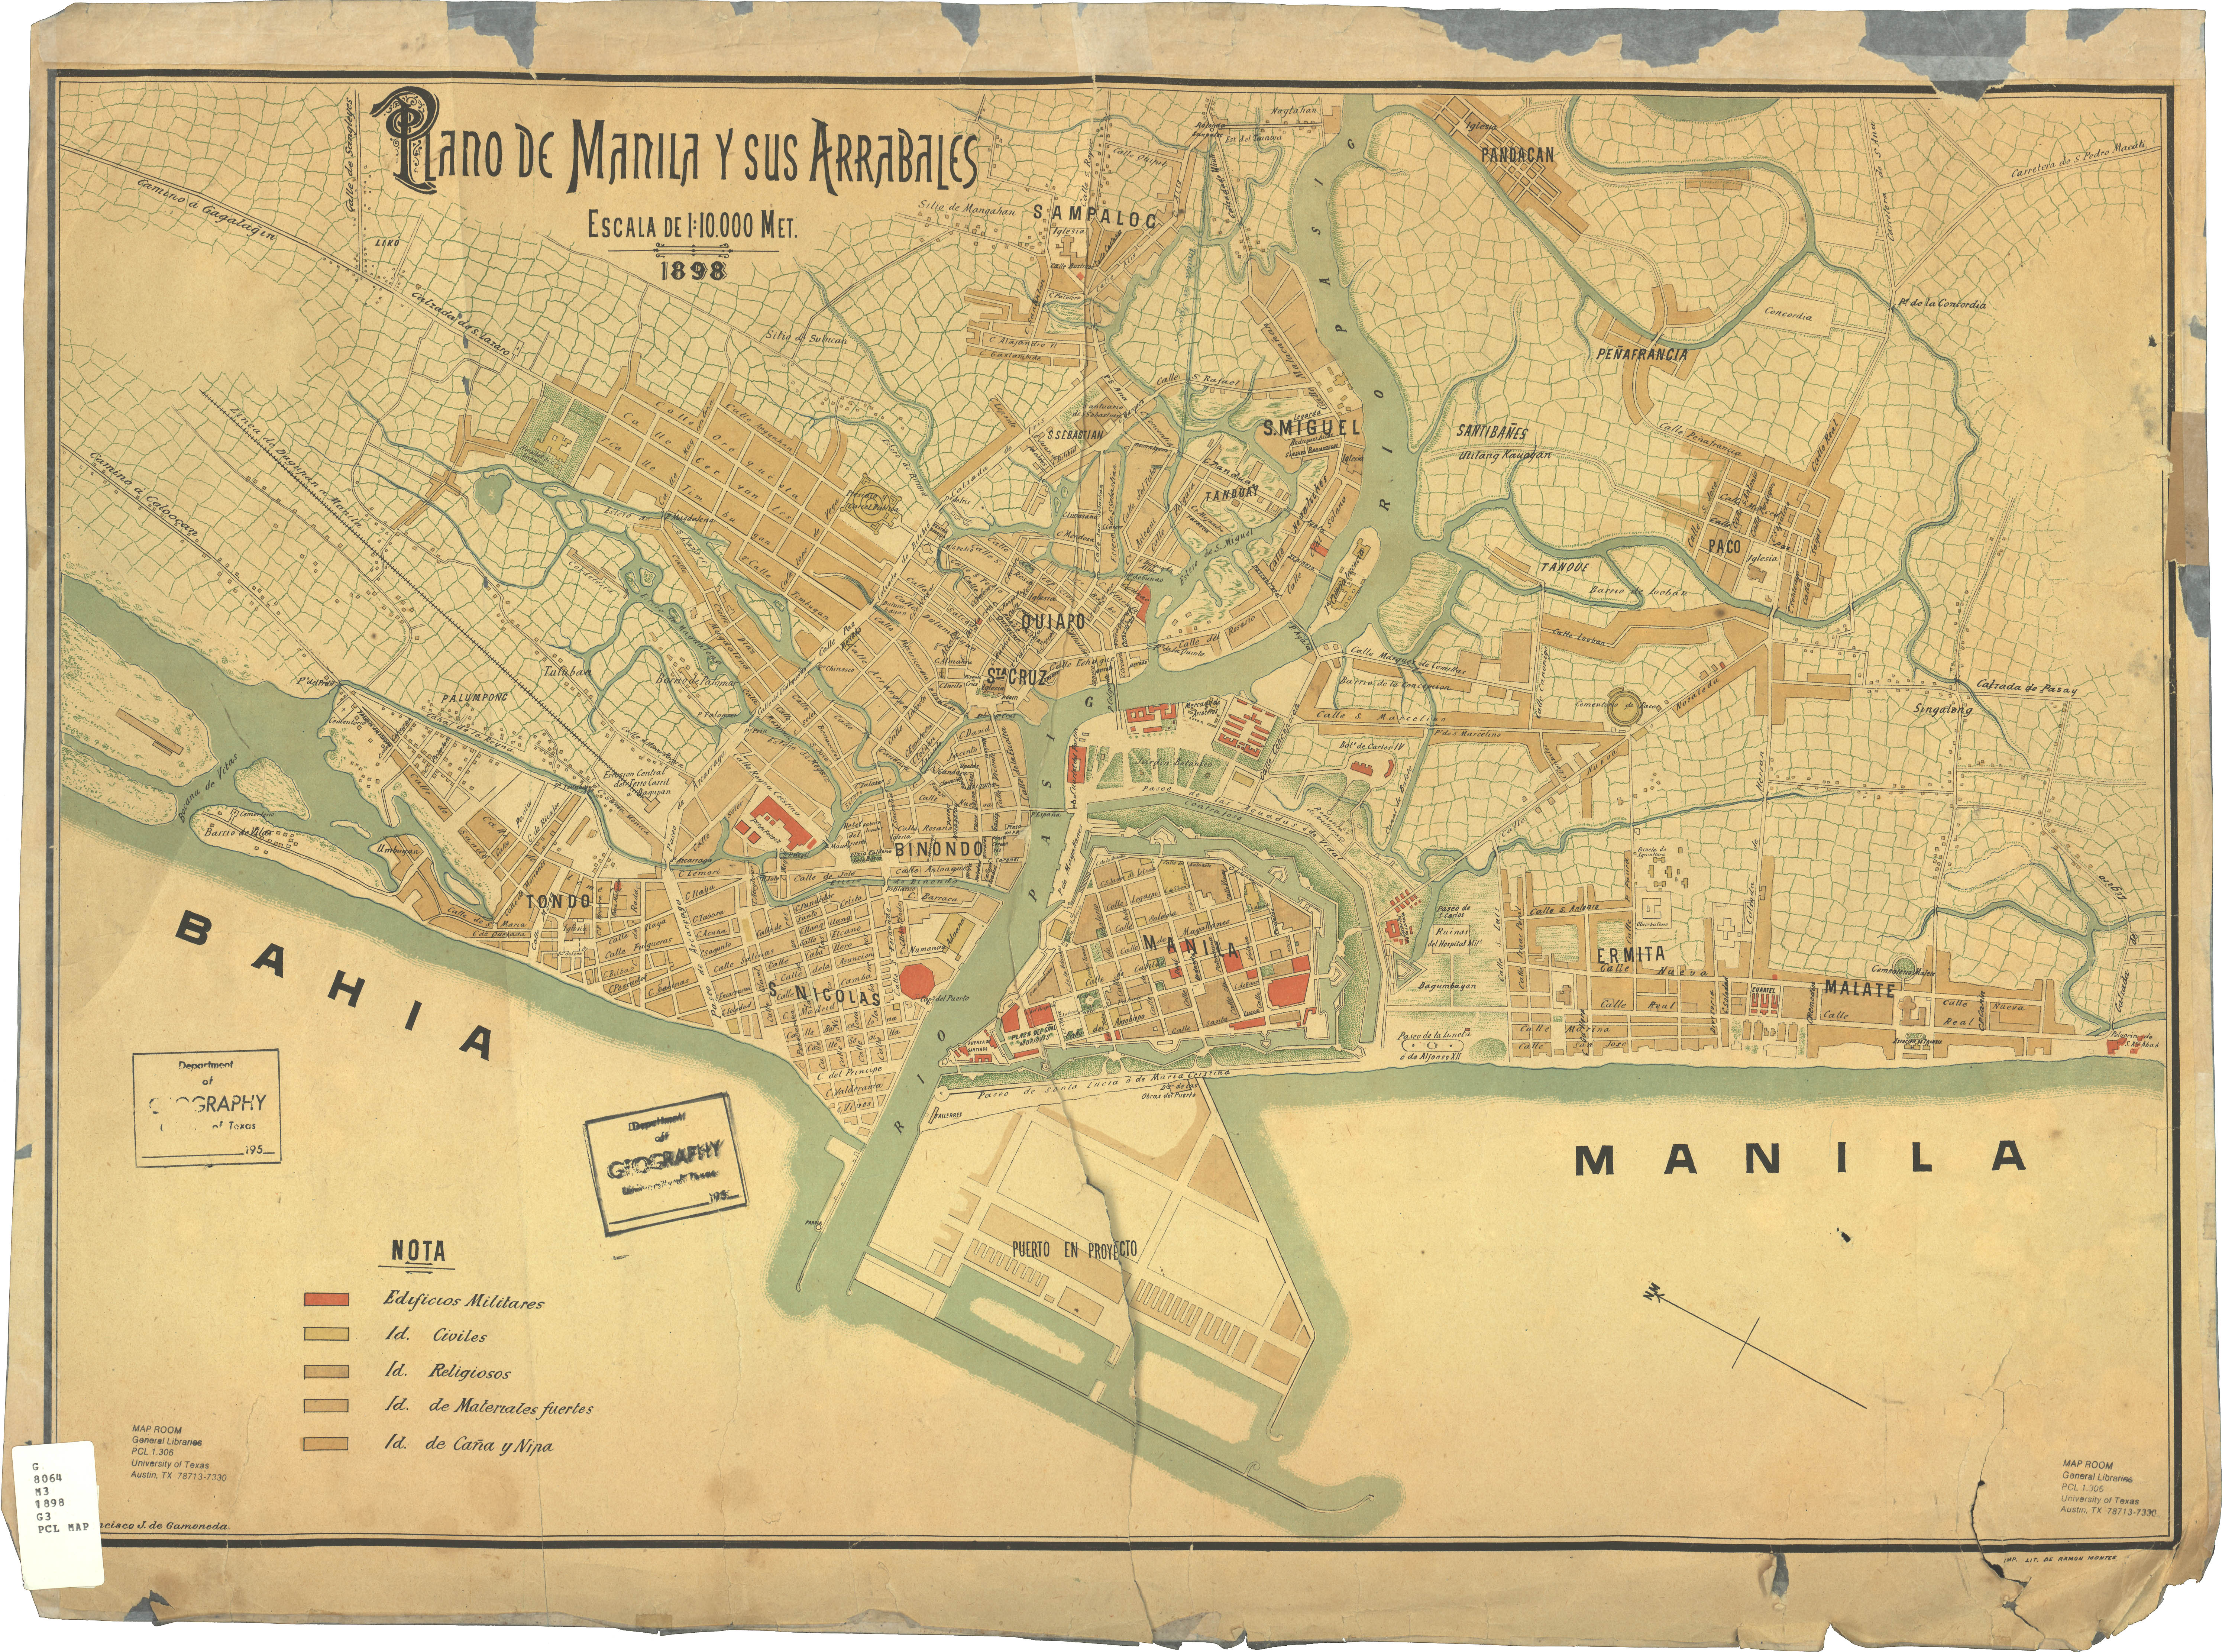 Online map of manila and suburbs 1898 historical download full size map image manila and suburbs 1898 historical map gumiabroncs Gallery